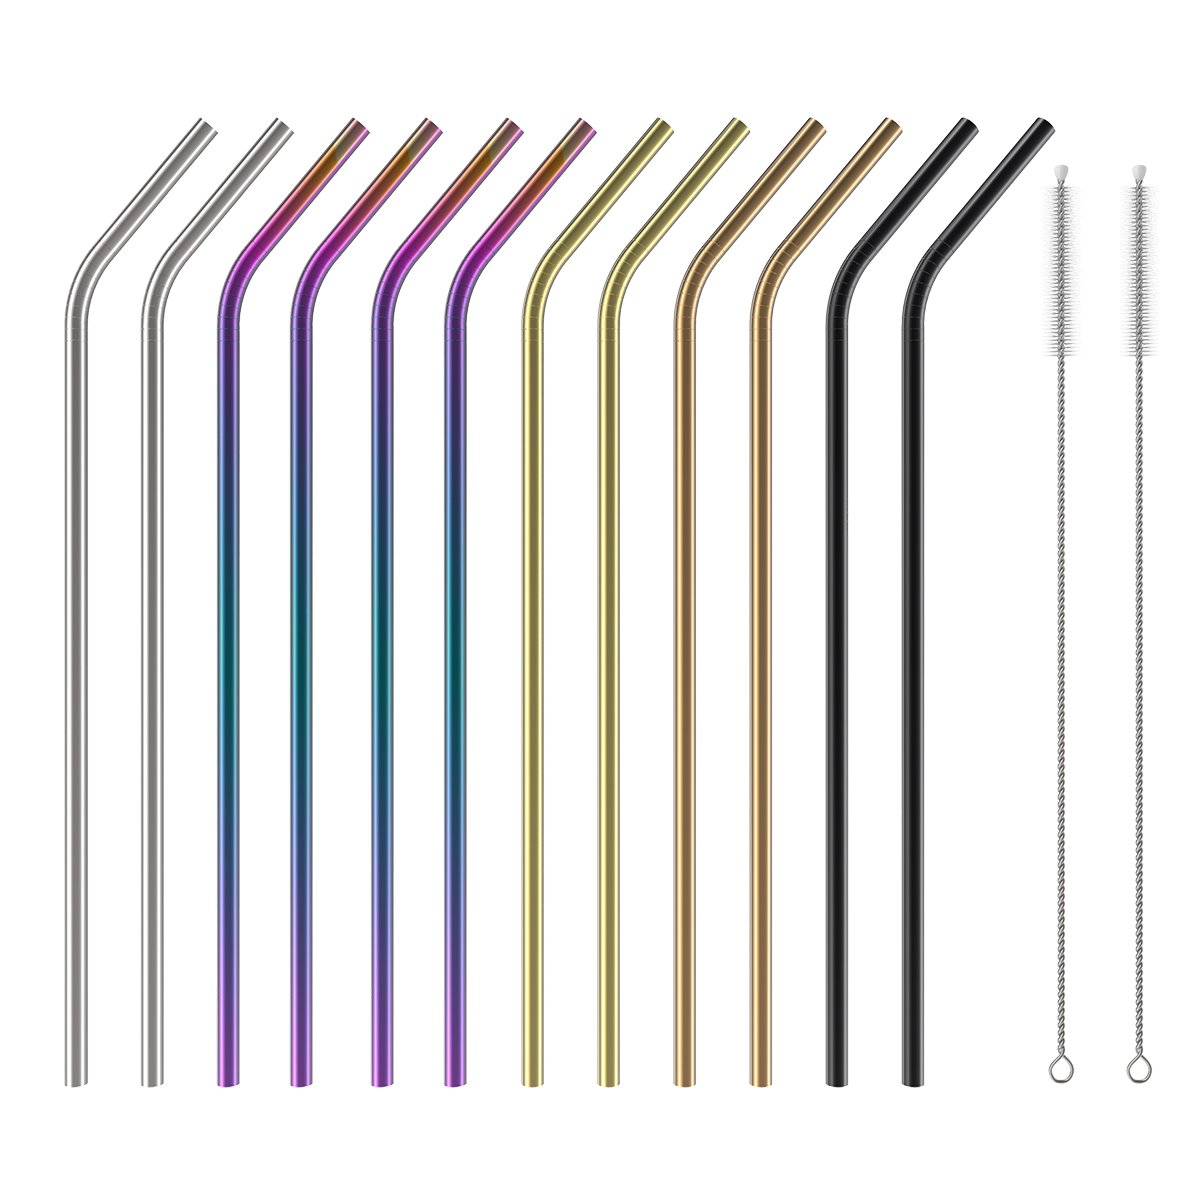 Stainless Steel Straws Set of 12, Wildone 10.5 Inch Bent Metal Drinking Straws, Reusable Straws with Free Cleaning Brush, 5 Colors, for 20oz 30oz Tumblers(12 Bent + 2 Brushes+1 Black Pouch) by Wildone